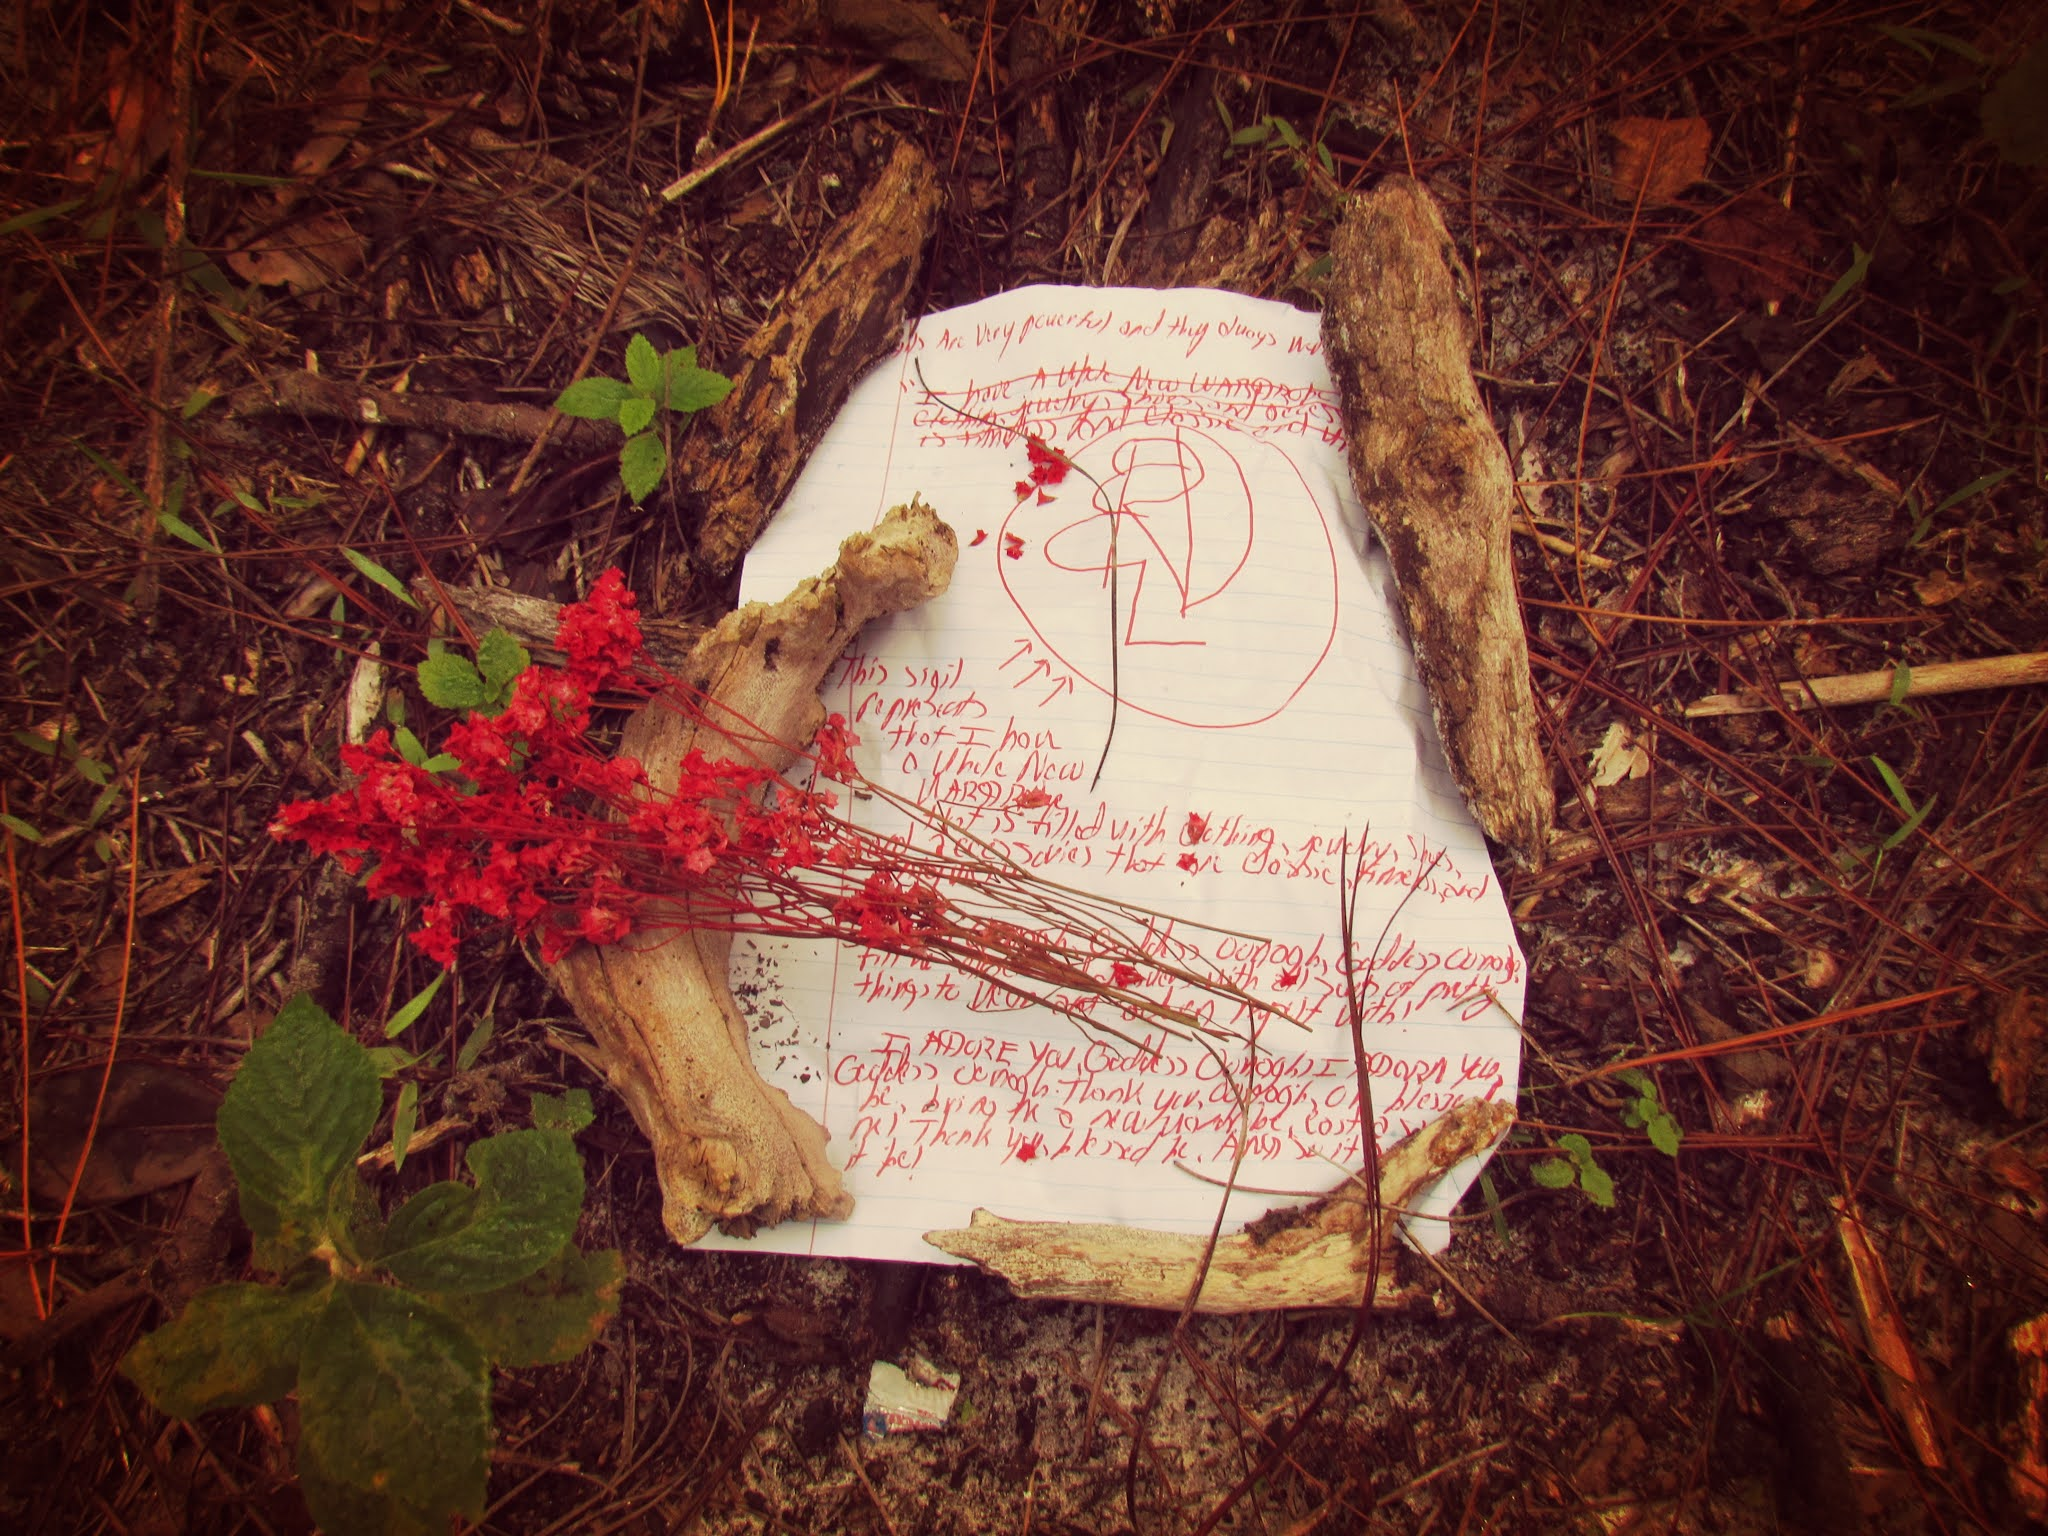 Sigil Magick in the forest on an autumn afternoon in the early morning hours with flower bundles, incense sticks and cones, and goddess altar worship and nature goddess offerings and gifts